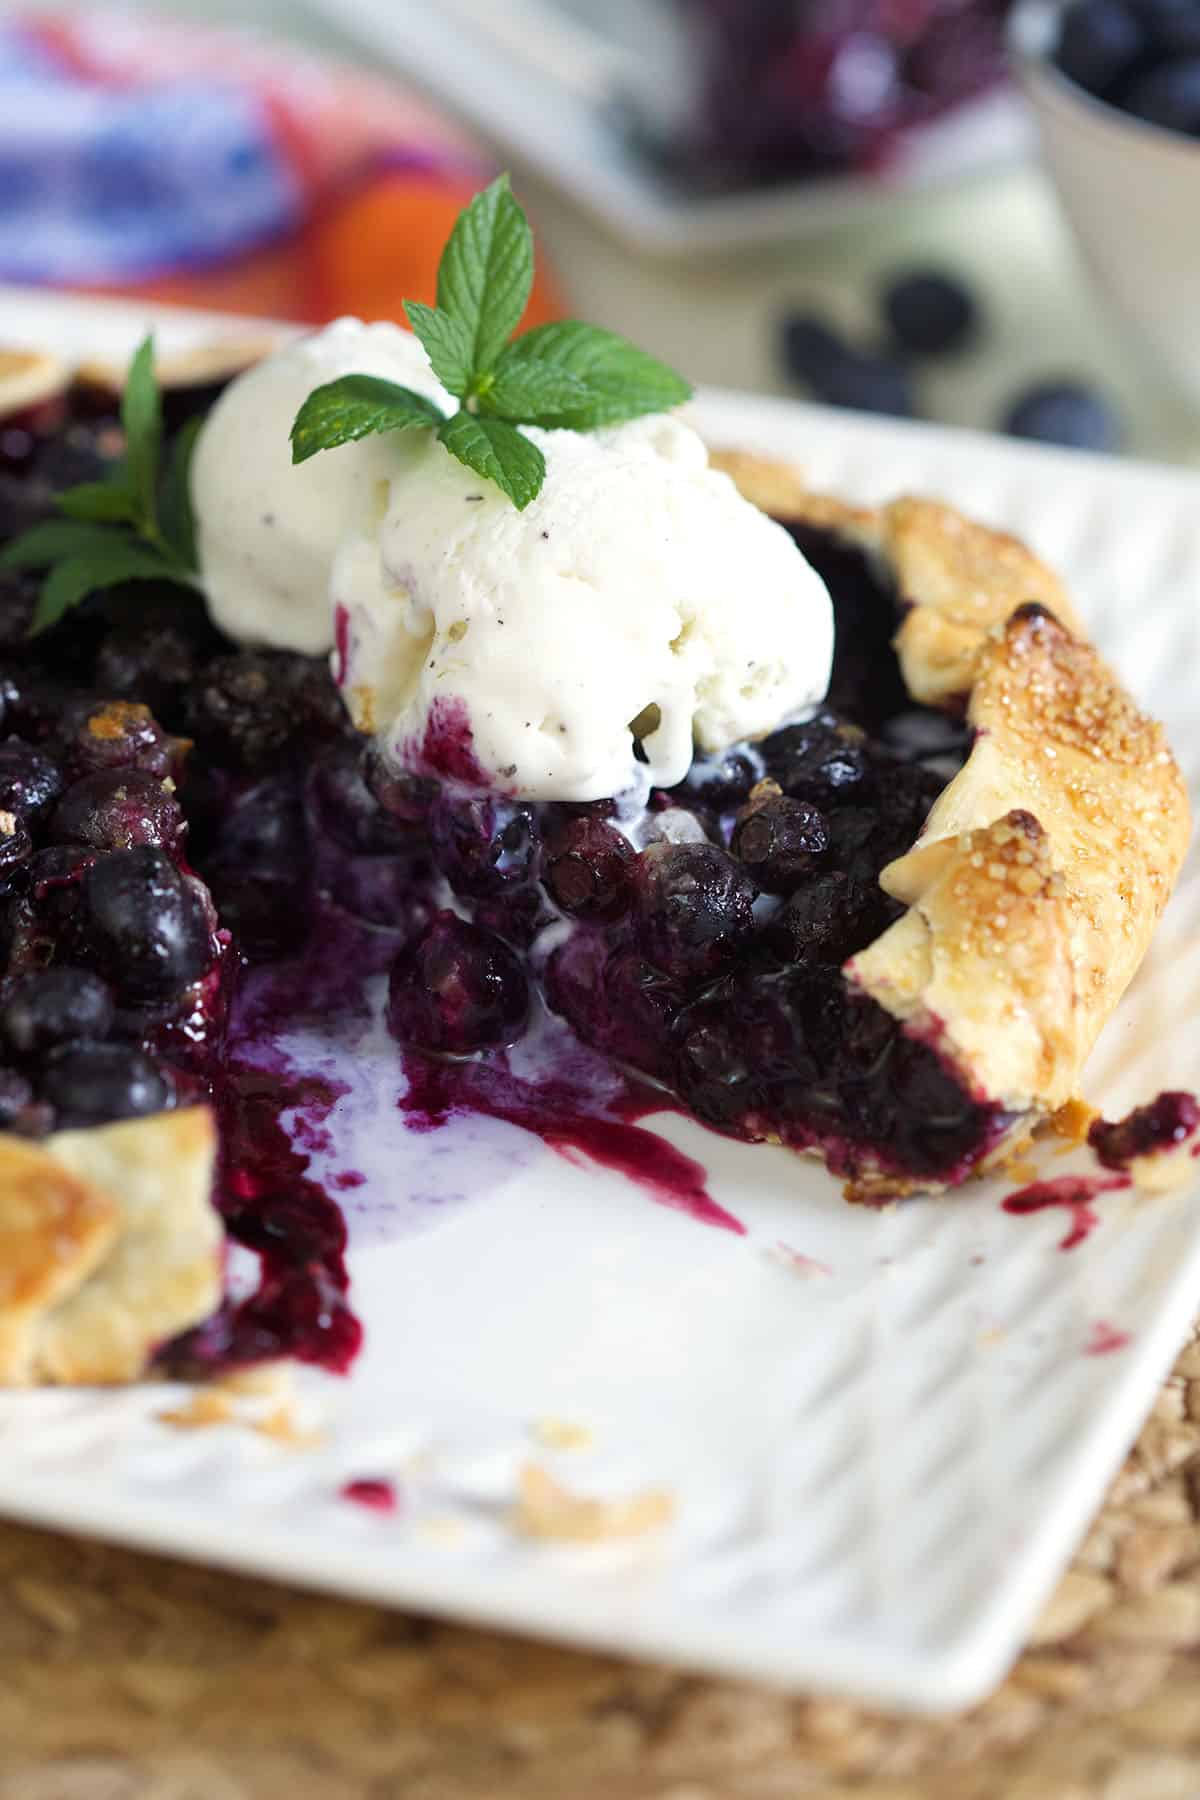 Blueberry Galette with vanilla ice cream on top and a sprig of mint on top.